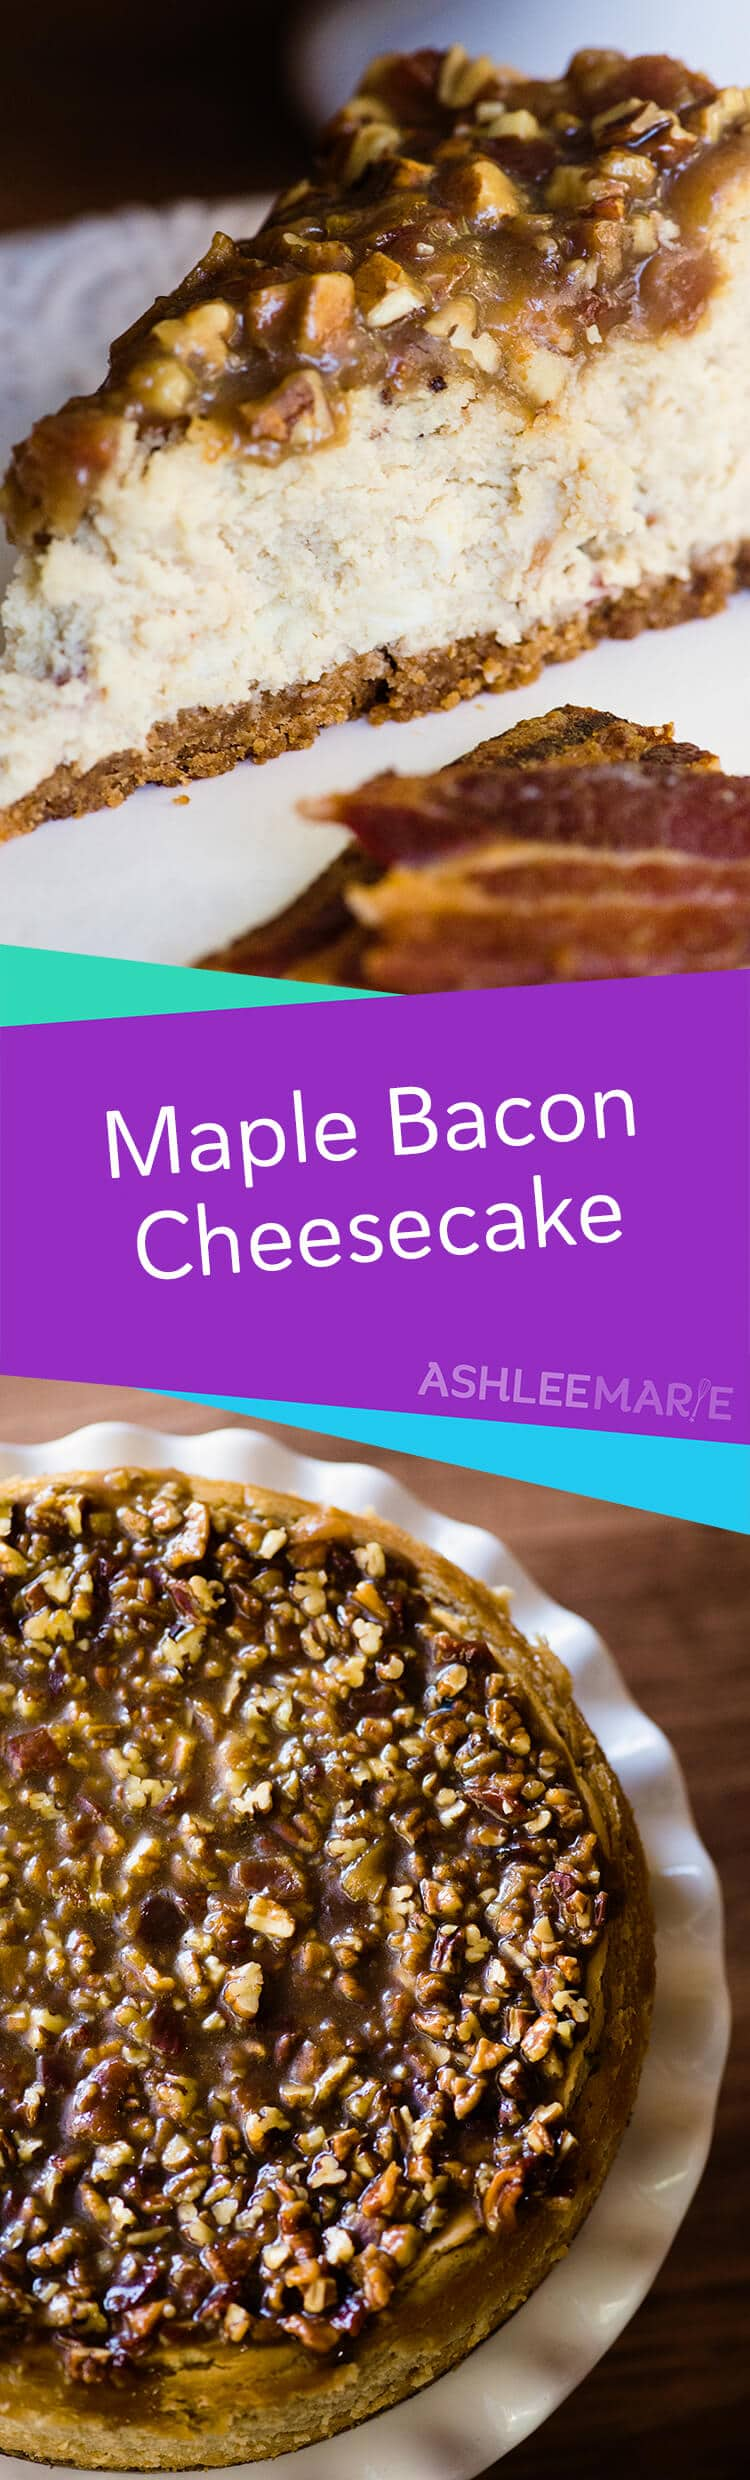 This Maple Bacon Cheesecake Recipe is delicious and easy to make - with tips and tricks for the perfect cheesecake and a video tutorial | Ashlee Marie | Summer | Cheesecake | Bacon | Maple | Dessert | #ashleemarie #cheesecake #dessert #bacon